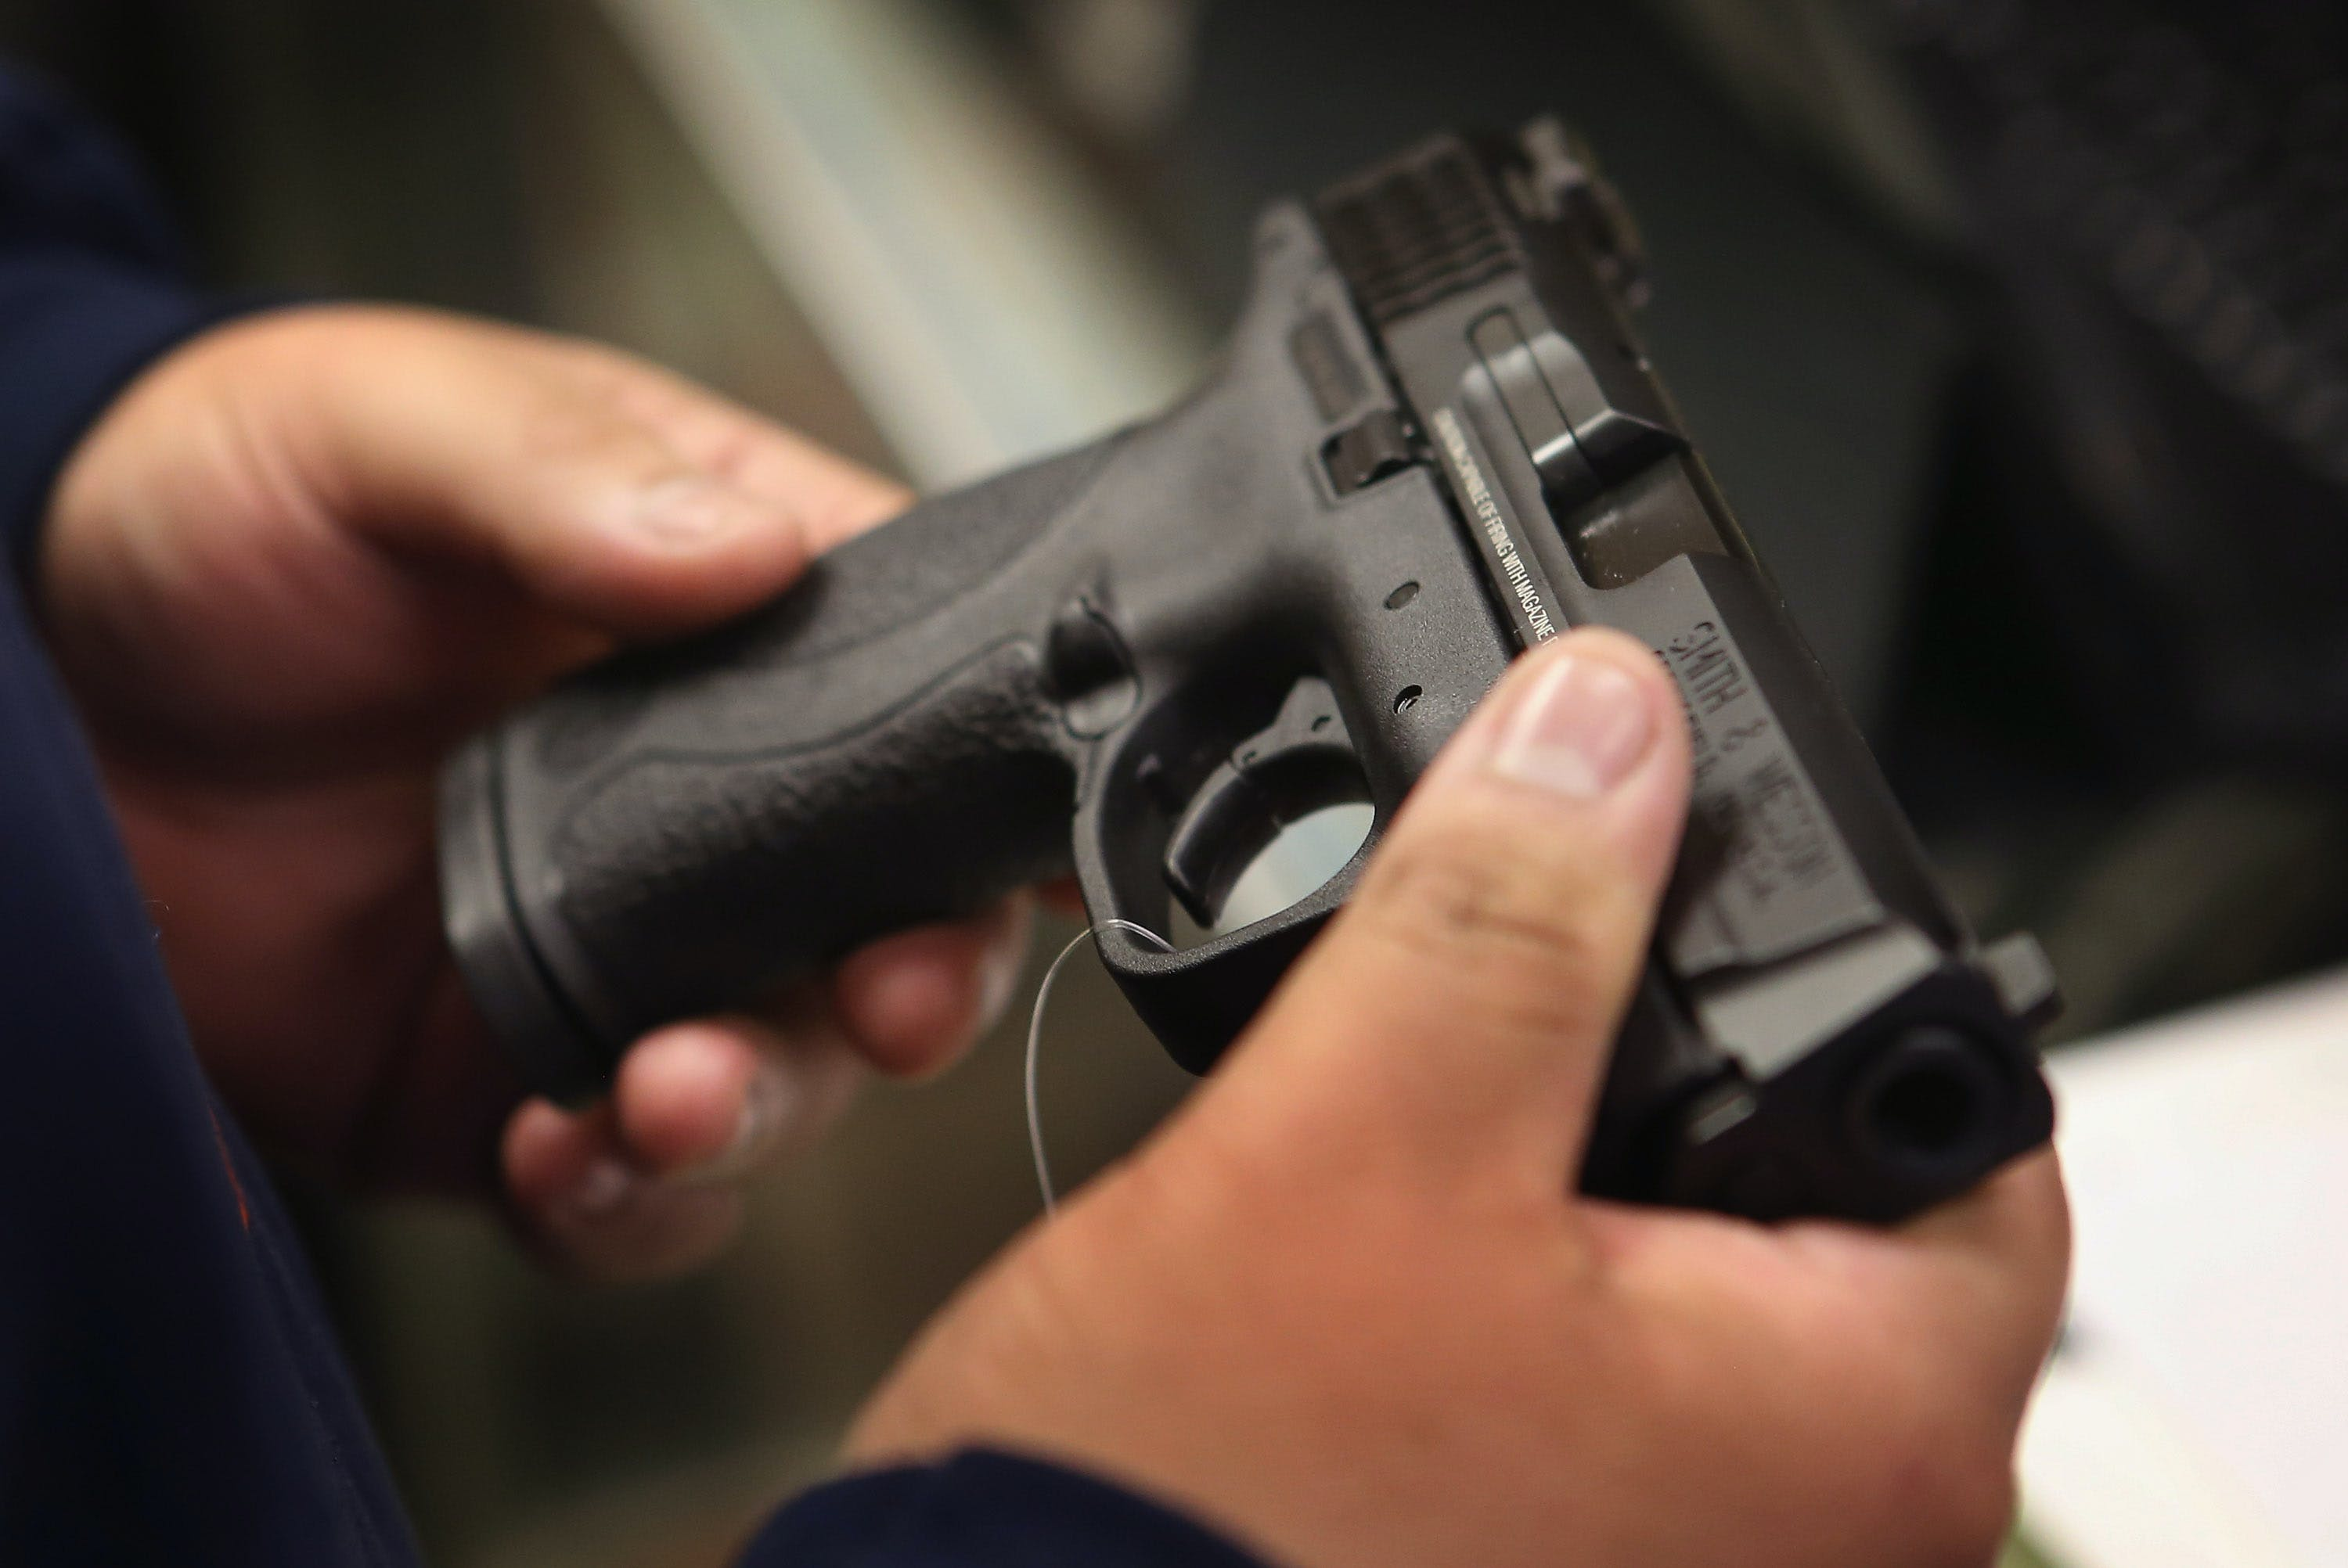 Medical Marijuana Patients Forced To Give Up Guns